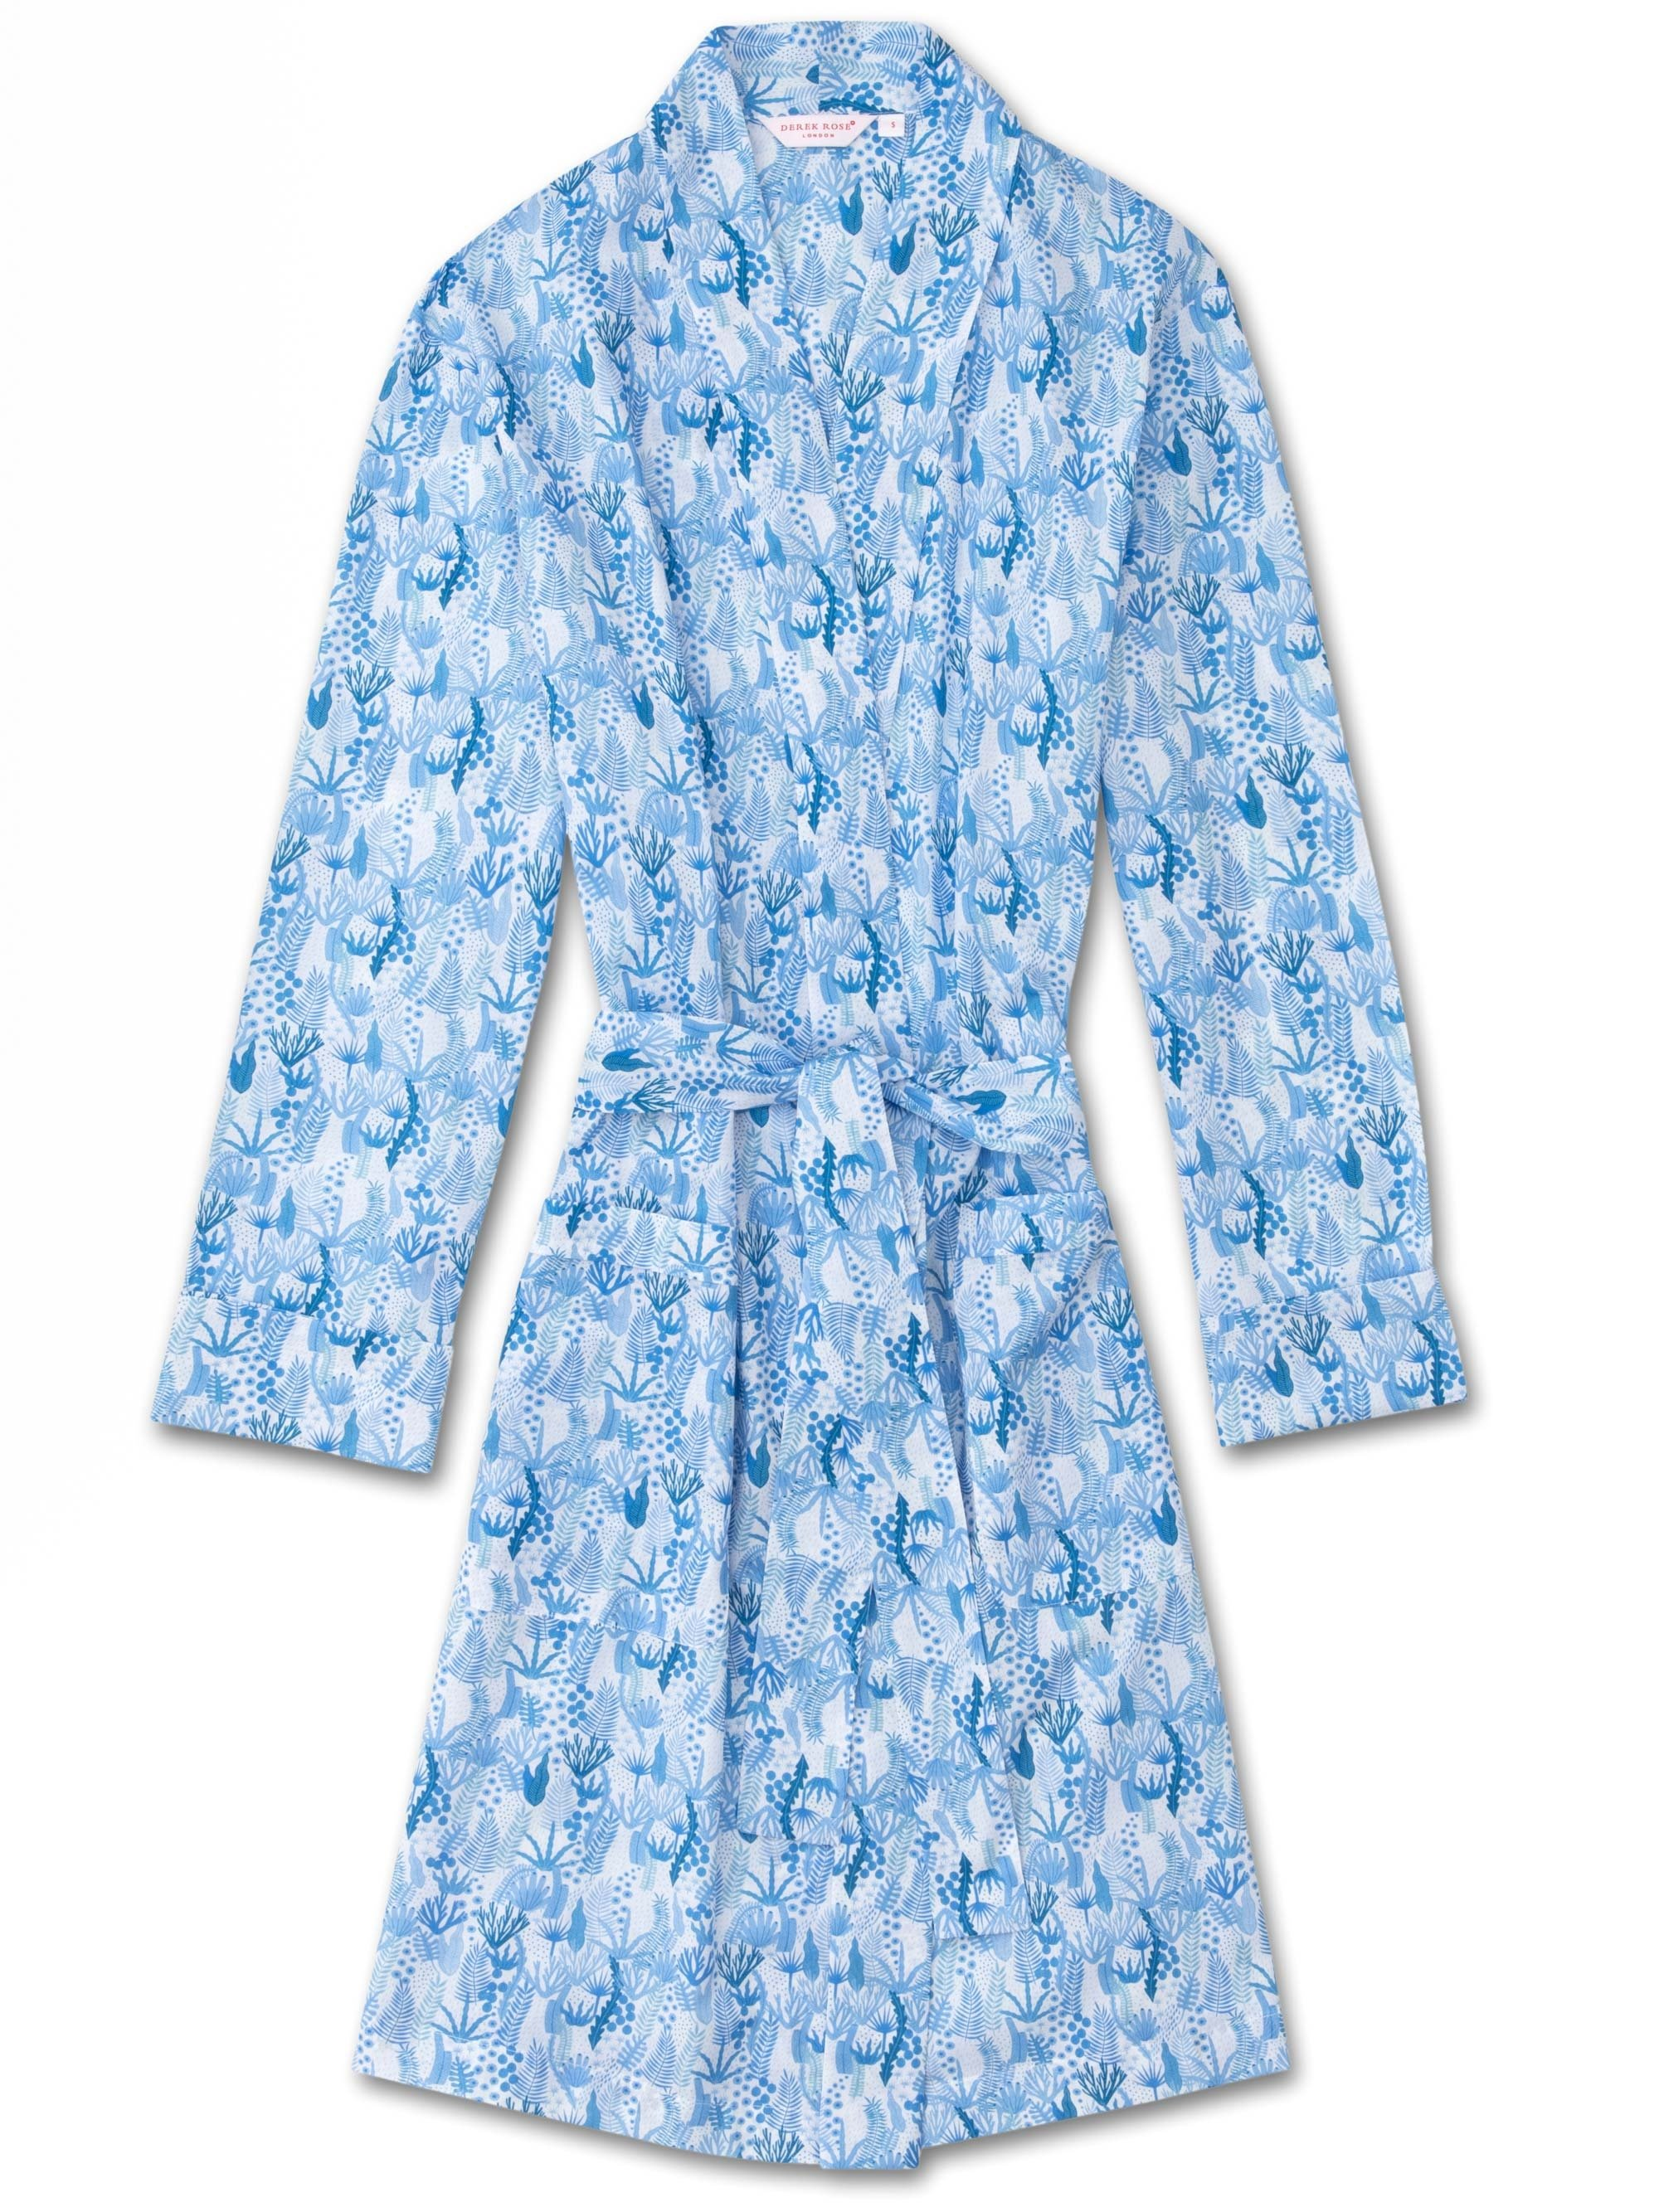 Women's Dressing Gown Ledbury 23 Cotton Batiste Blue